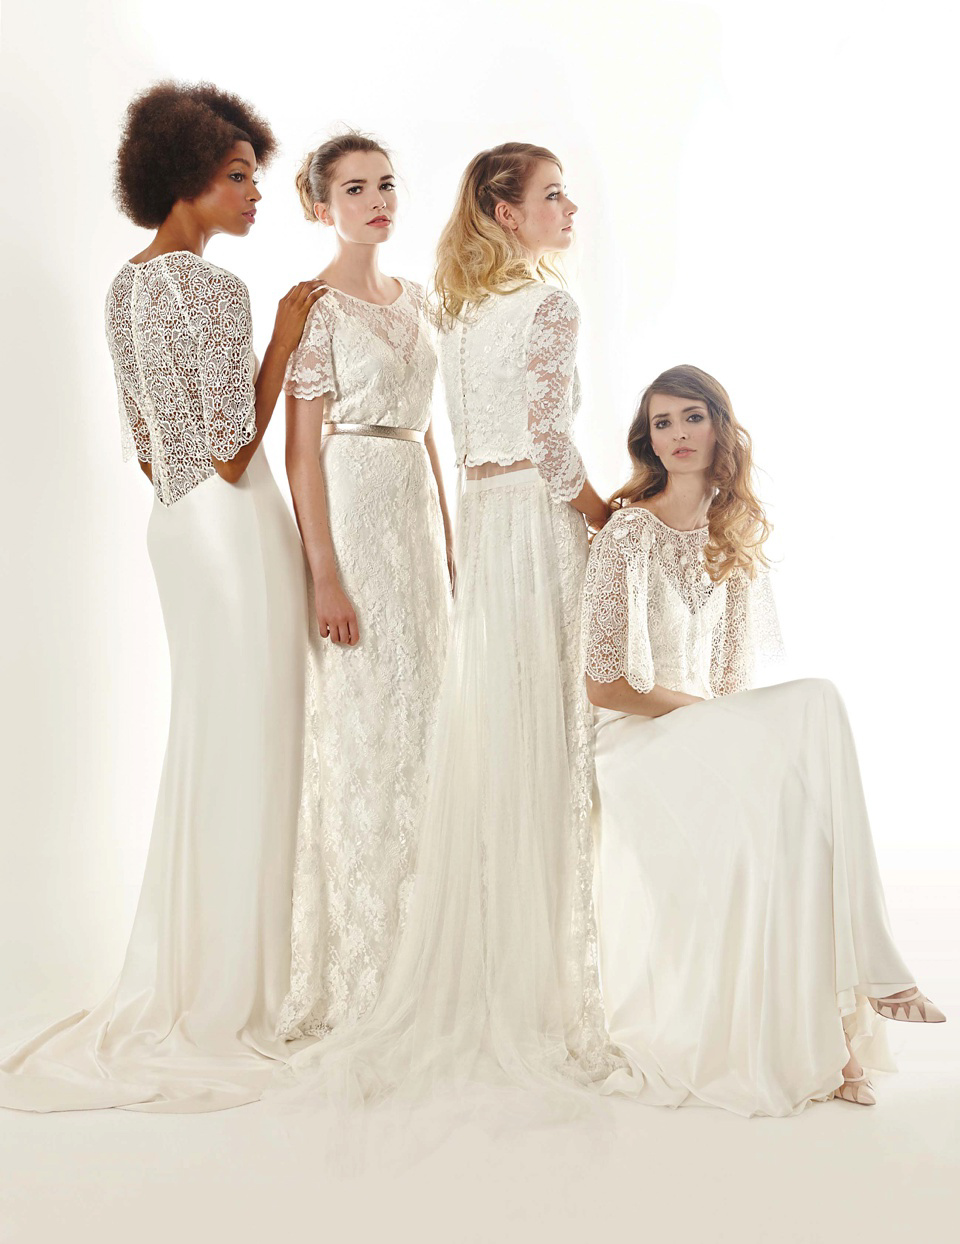 Fresh & Fabulous – Cicily Bridal Reveals A Whole New Look